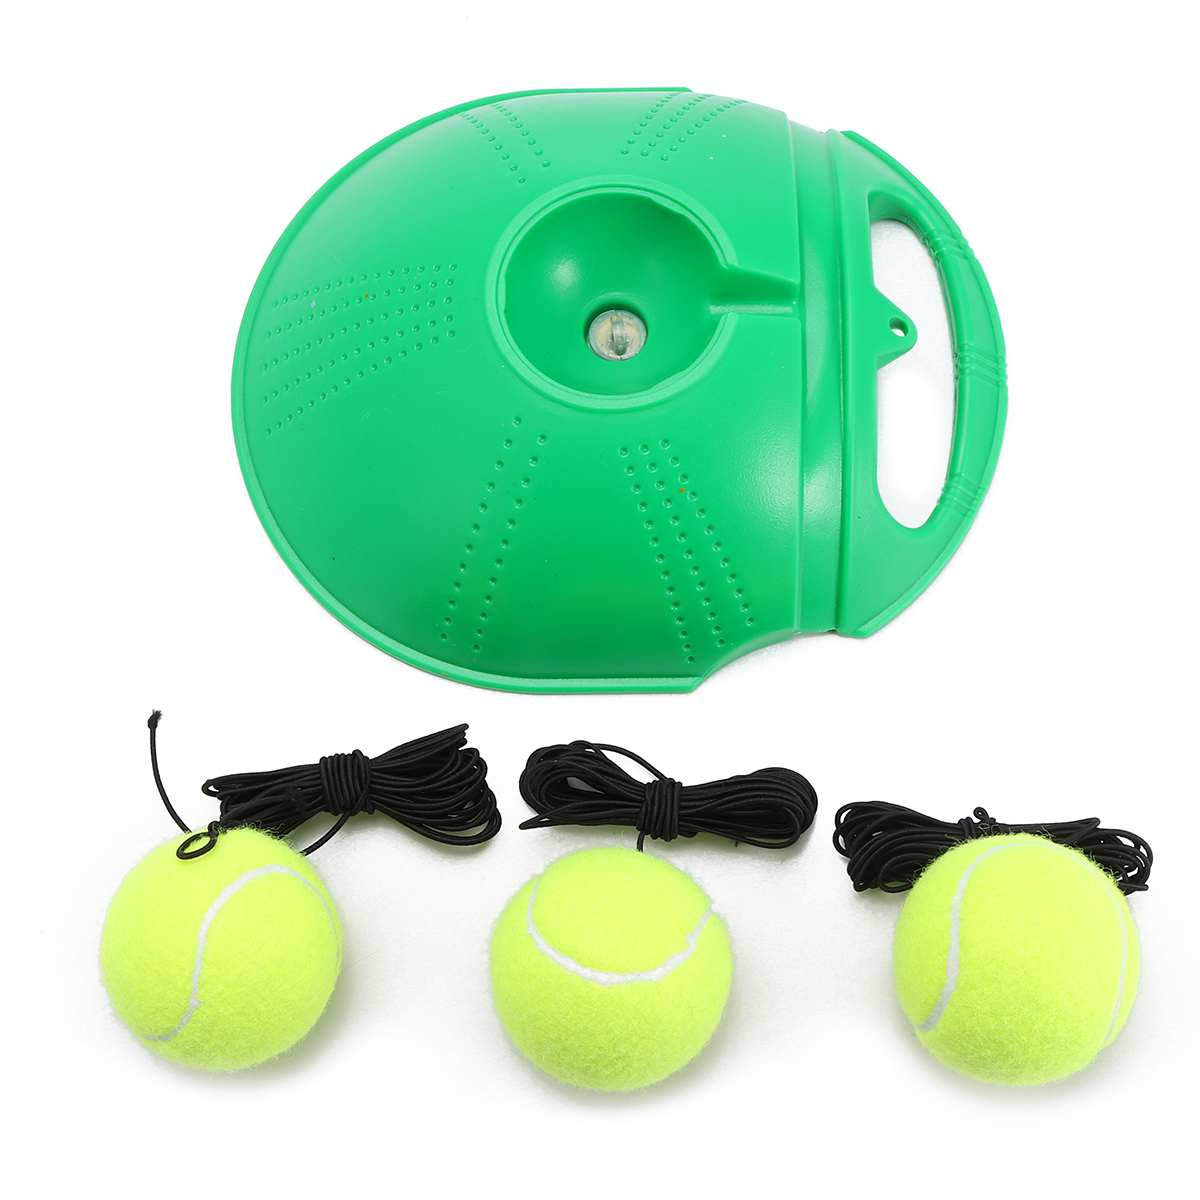 Tennis Trainer and Self-study Tennis Training Tool with Rebound Balls and Baseboard 12